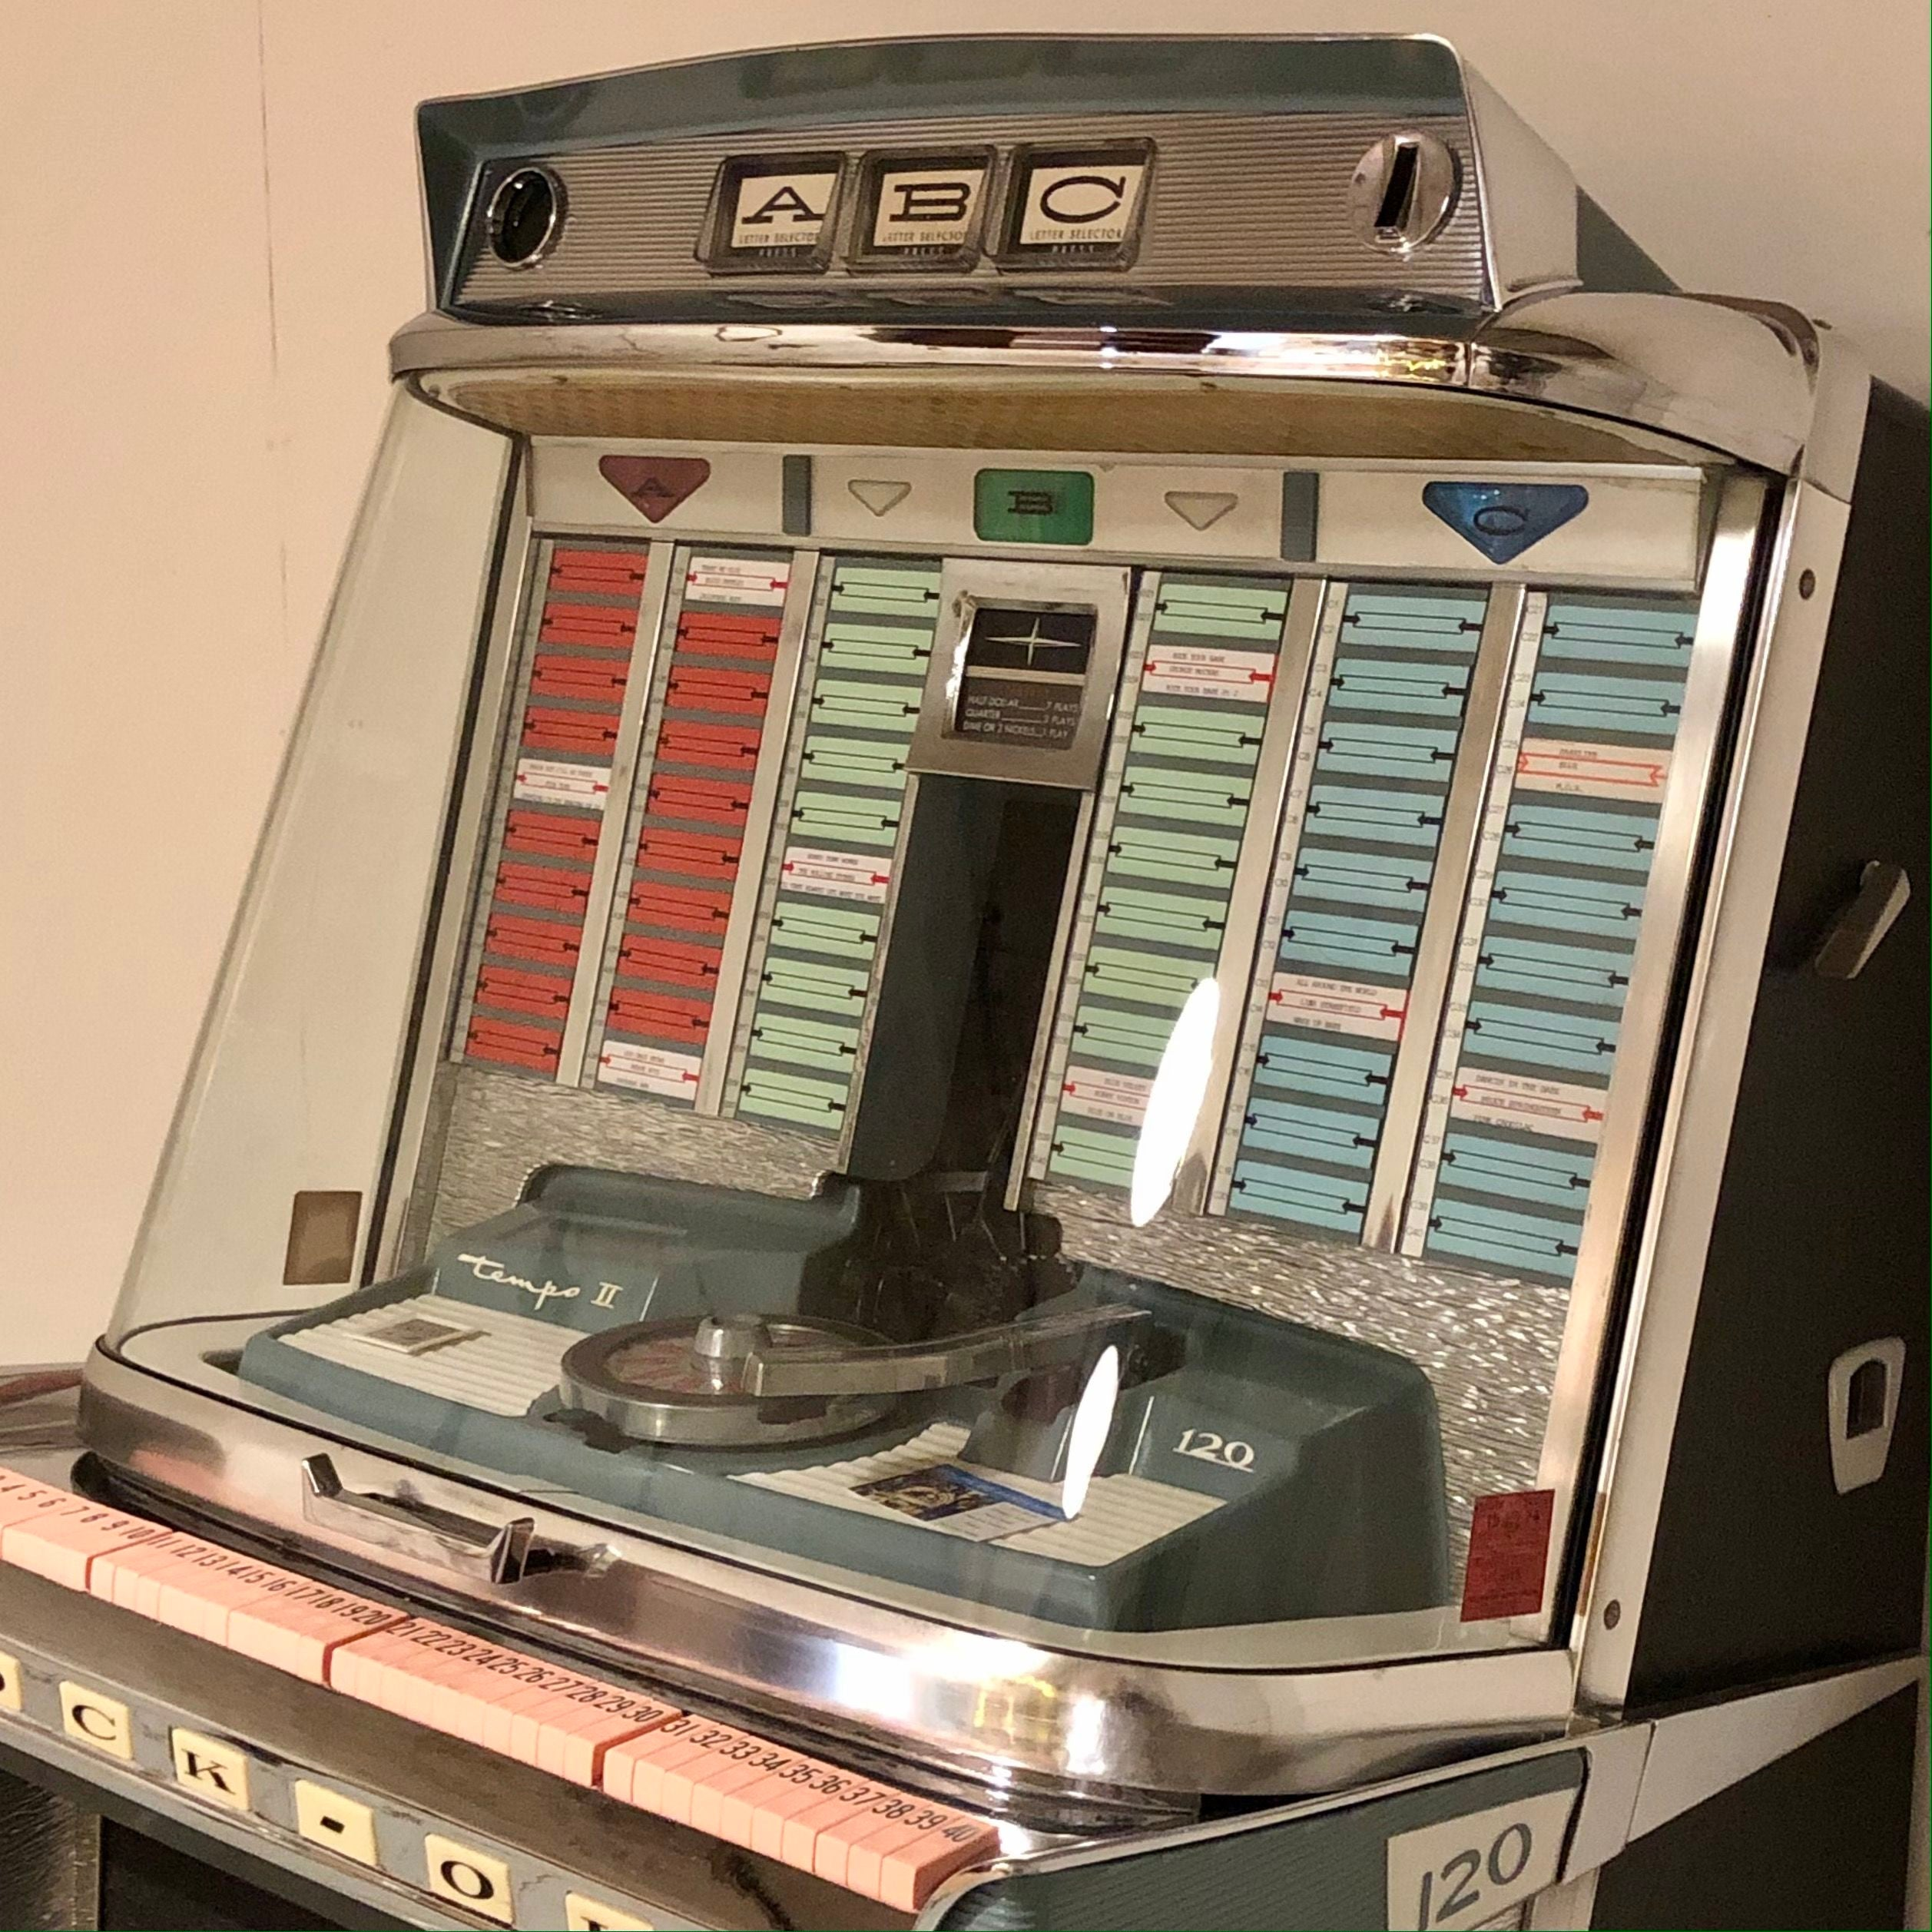 Rockola tempo 2 jukebox 1960